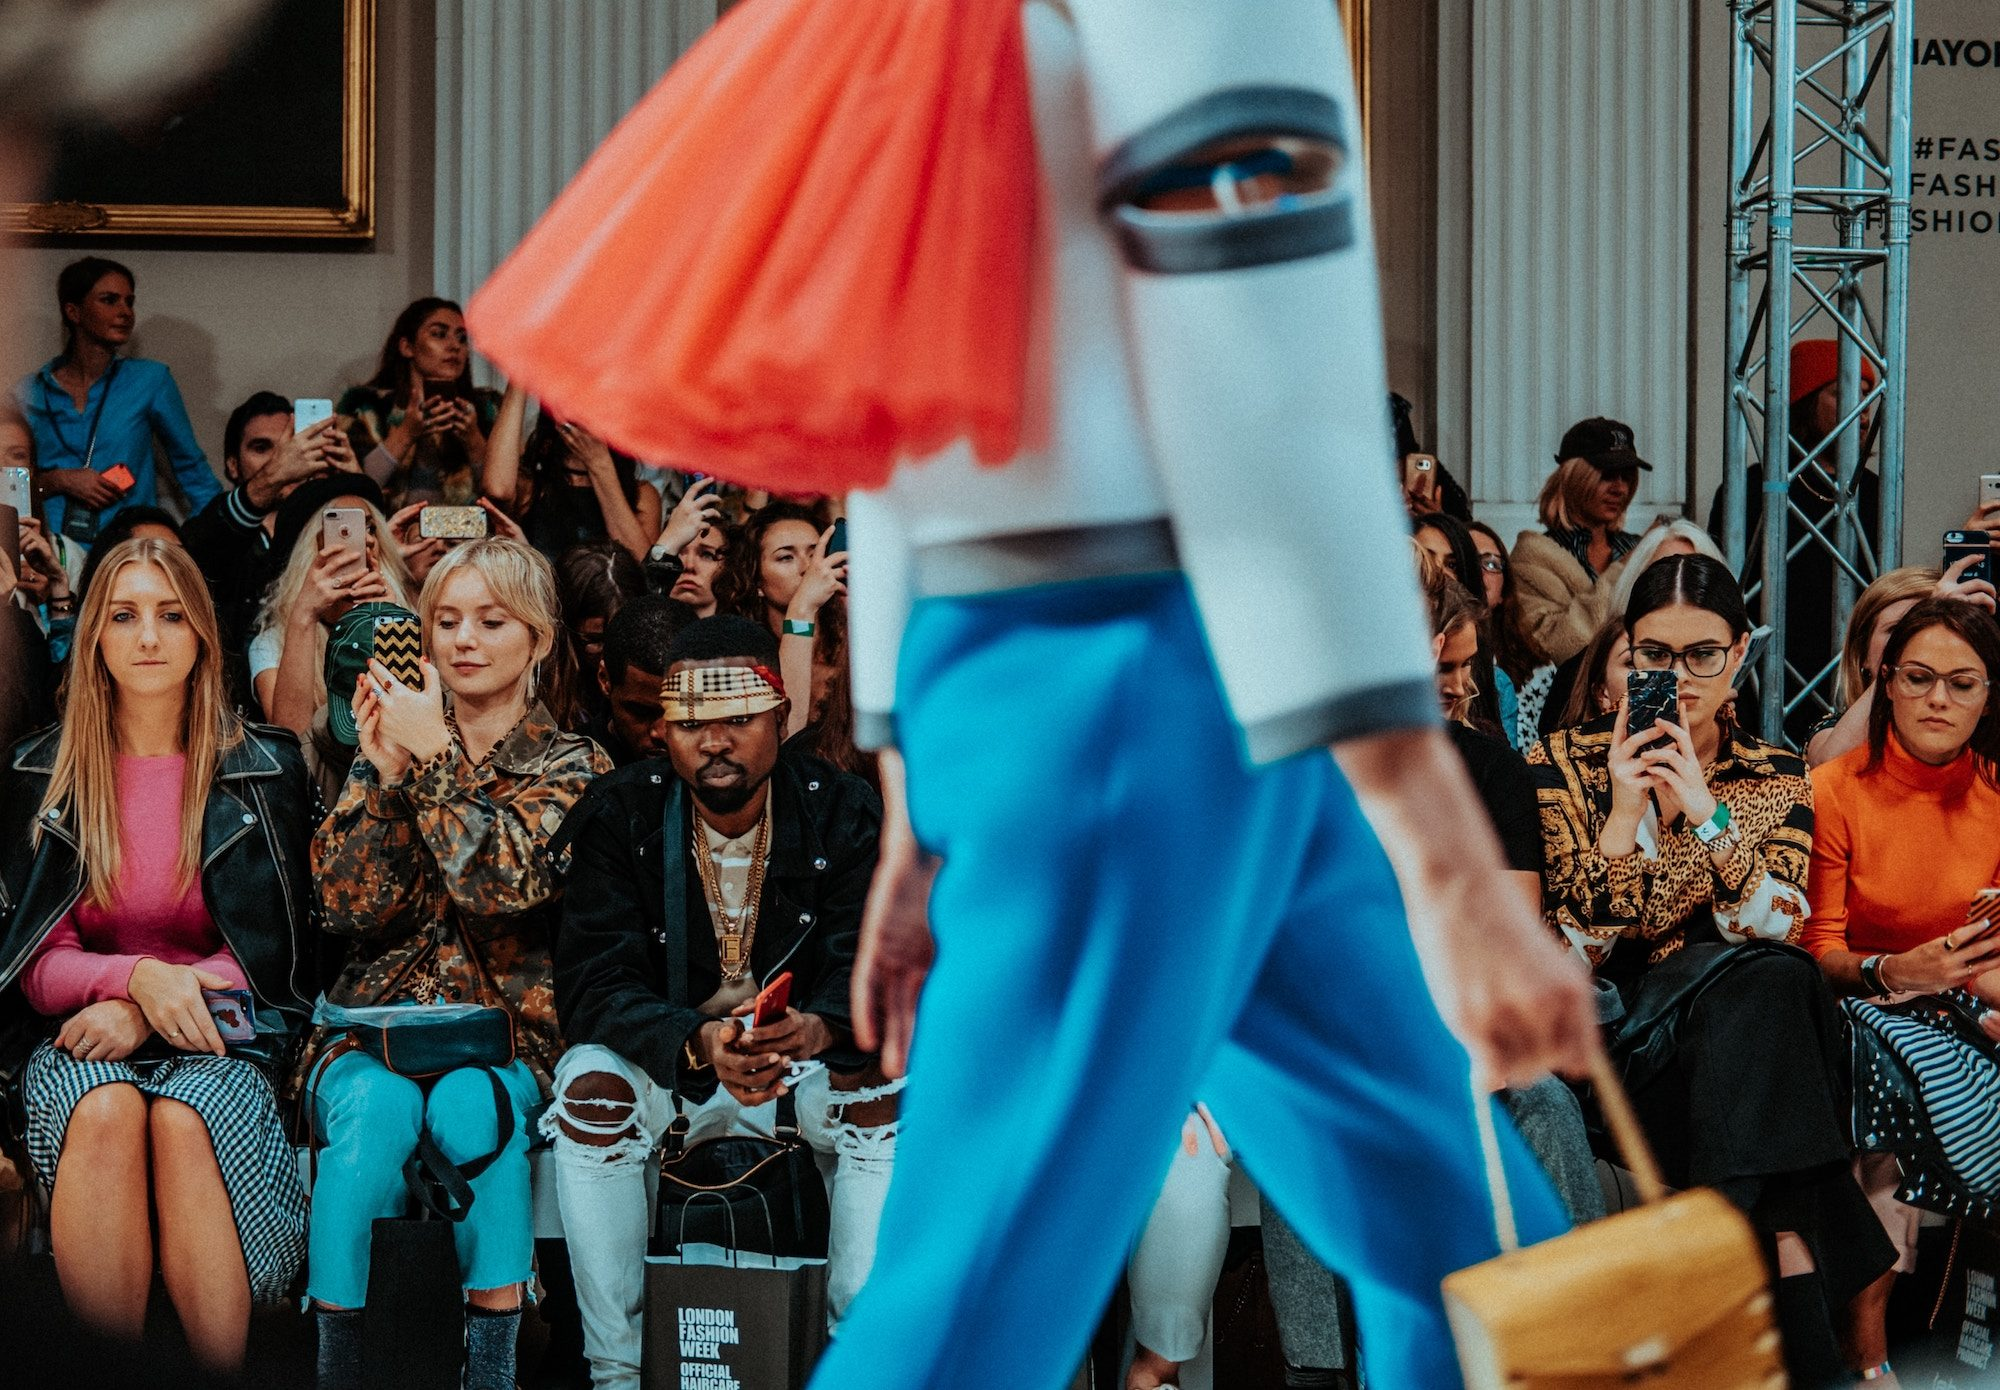 January in Paris is all about Fashion Week, including men's fashion week.